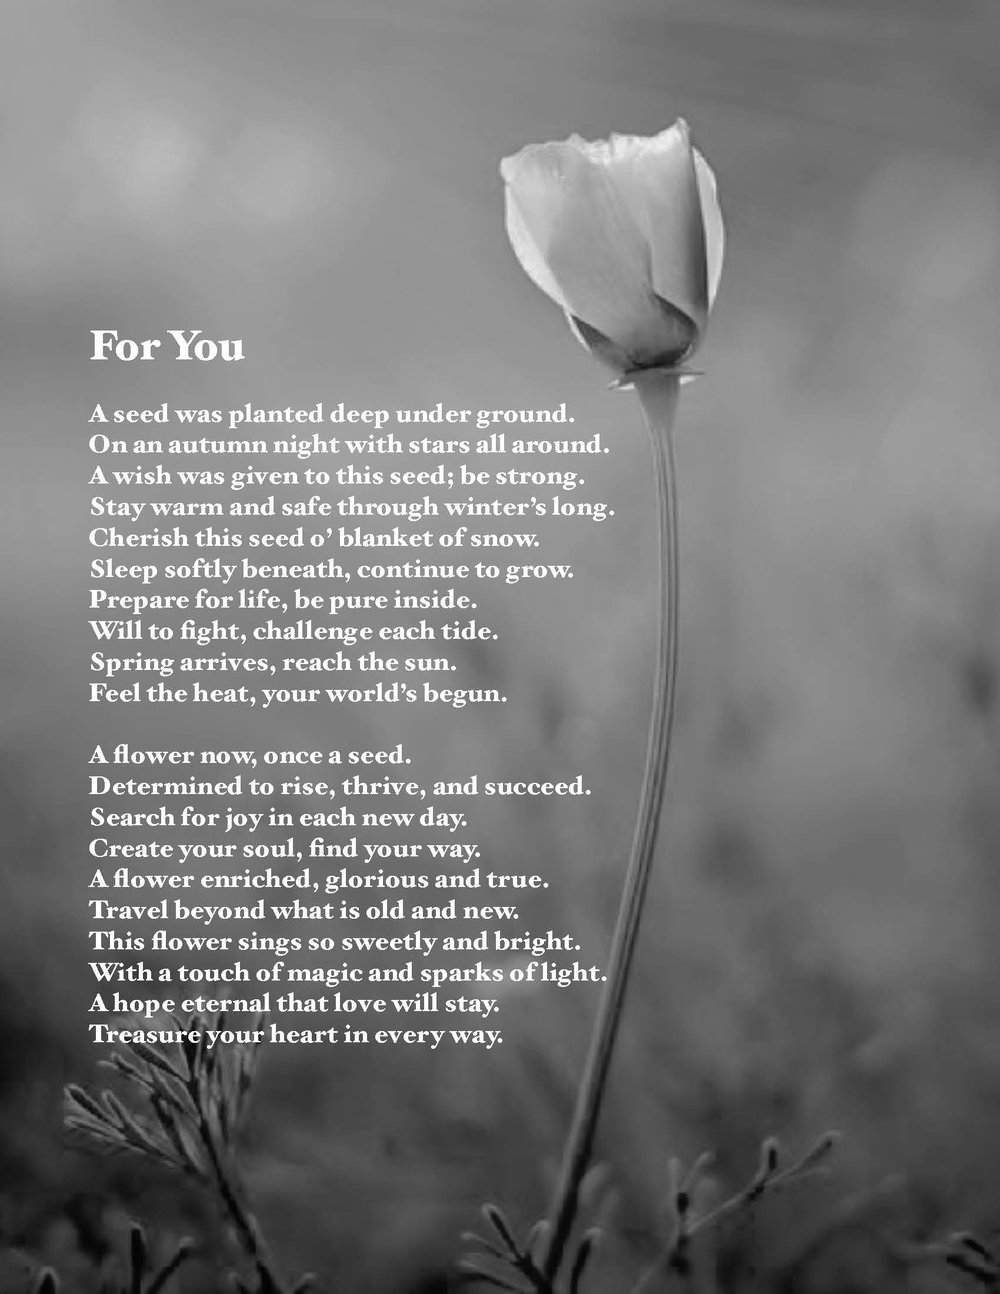 For You-poem.jpg